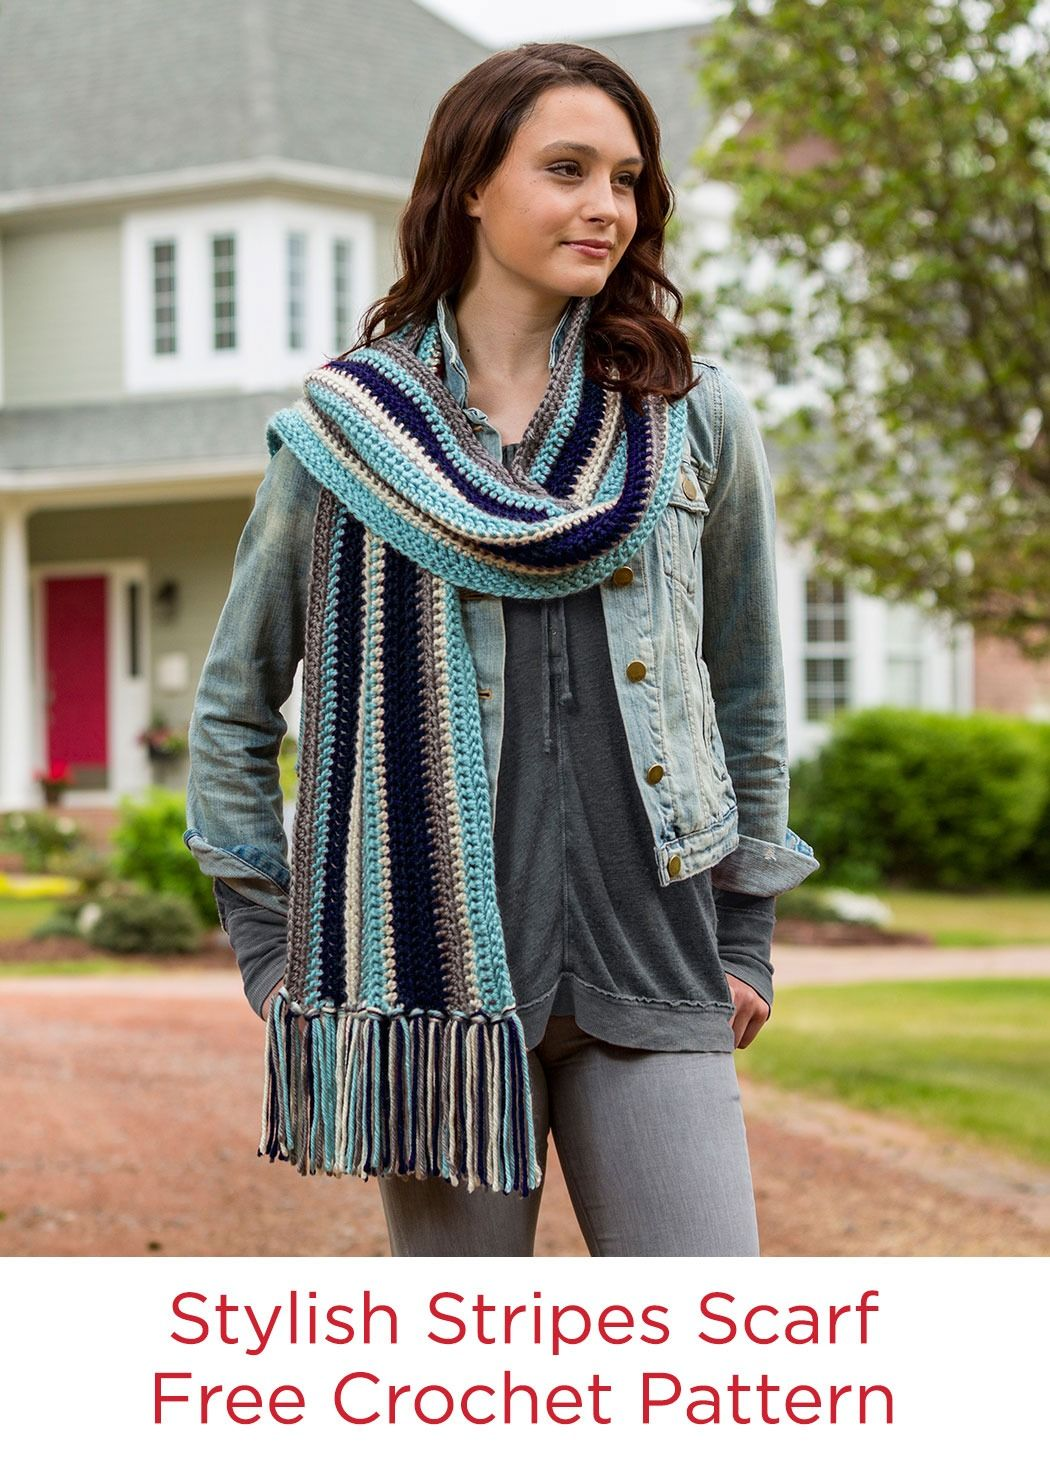 Stylish stripes scarf free crochet pattern in red heart soft stylish stripes scarf free crochet pattern in red heart soft essentials yarn available at michaels bankloansurffo Image collections